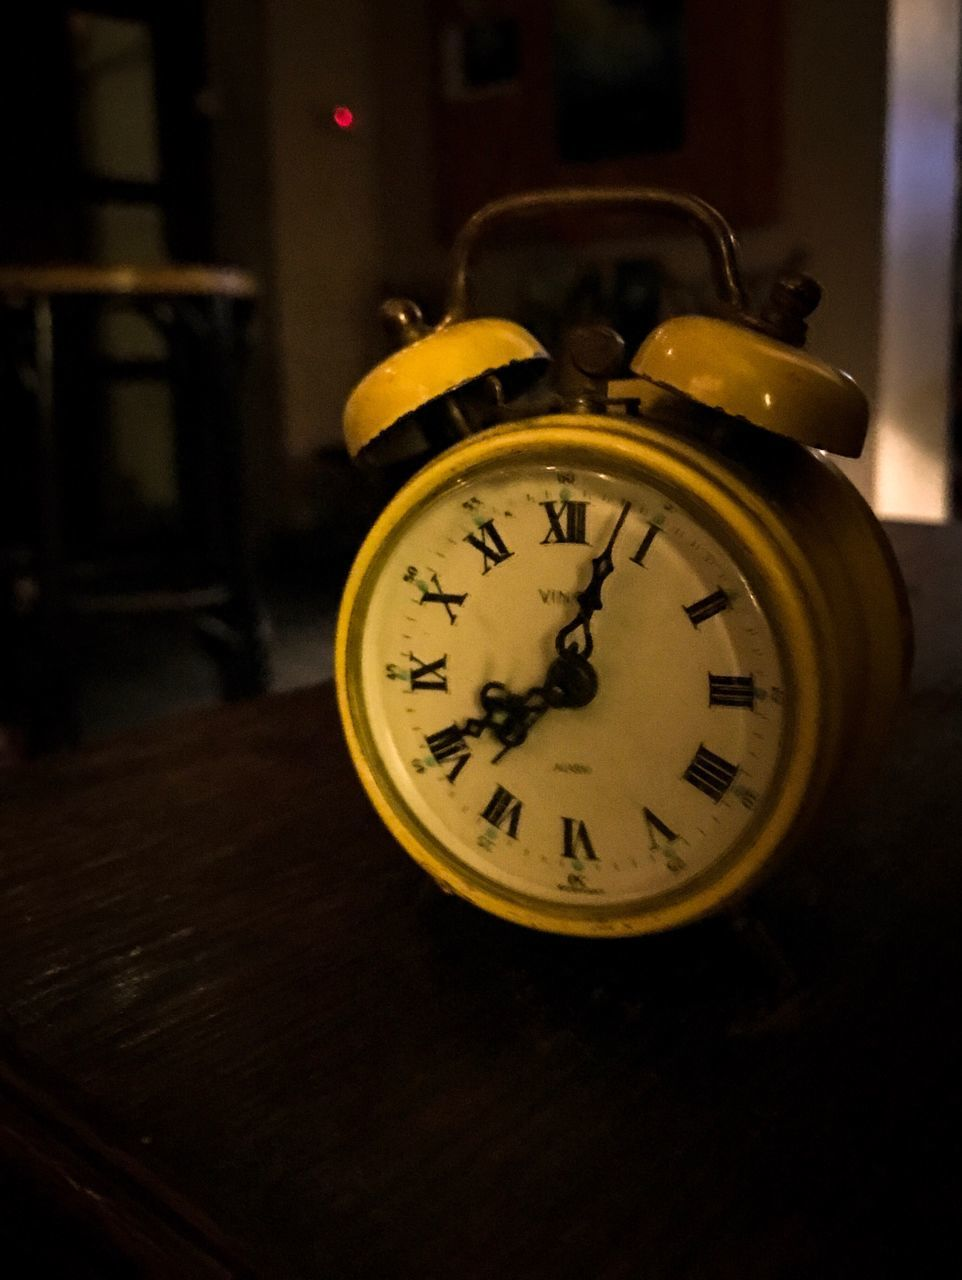 time, clock, indoors, focus on foreground, alarm clock, old-fashioned, no people, retro styled, close-up, night, home interior, clock face, minute hand, hour hand